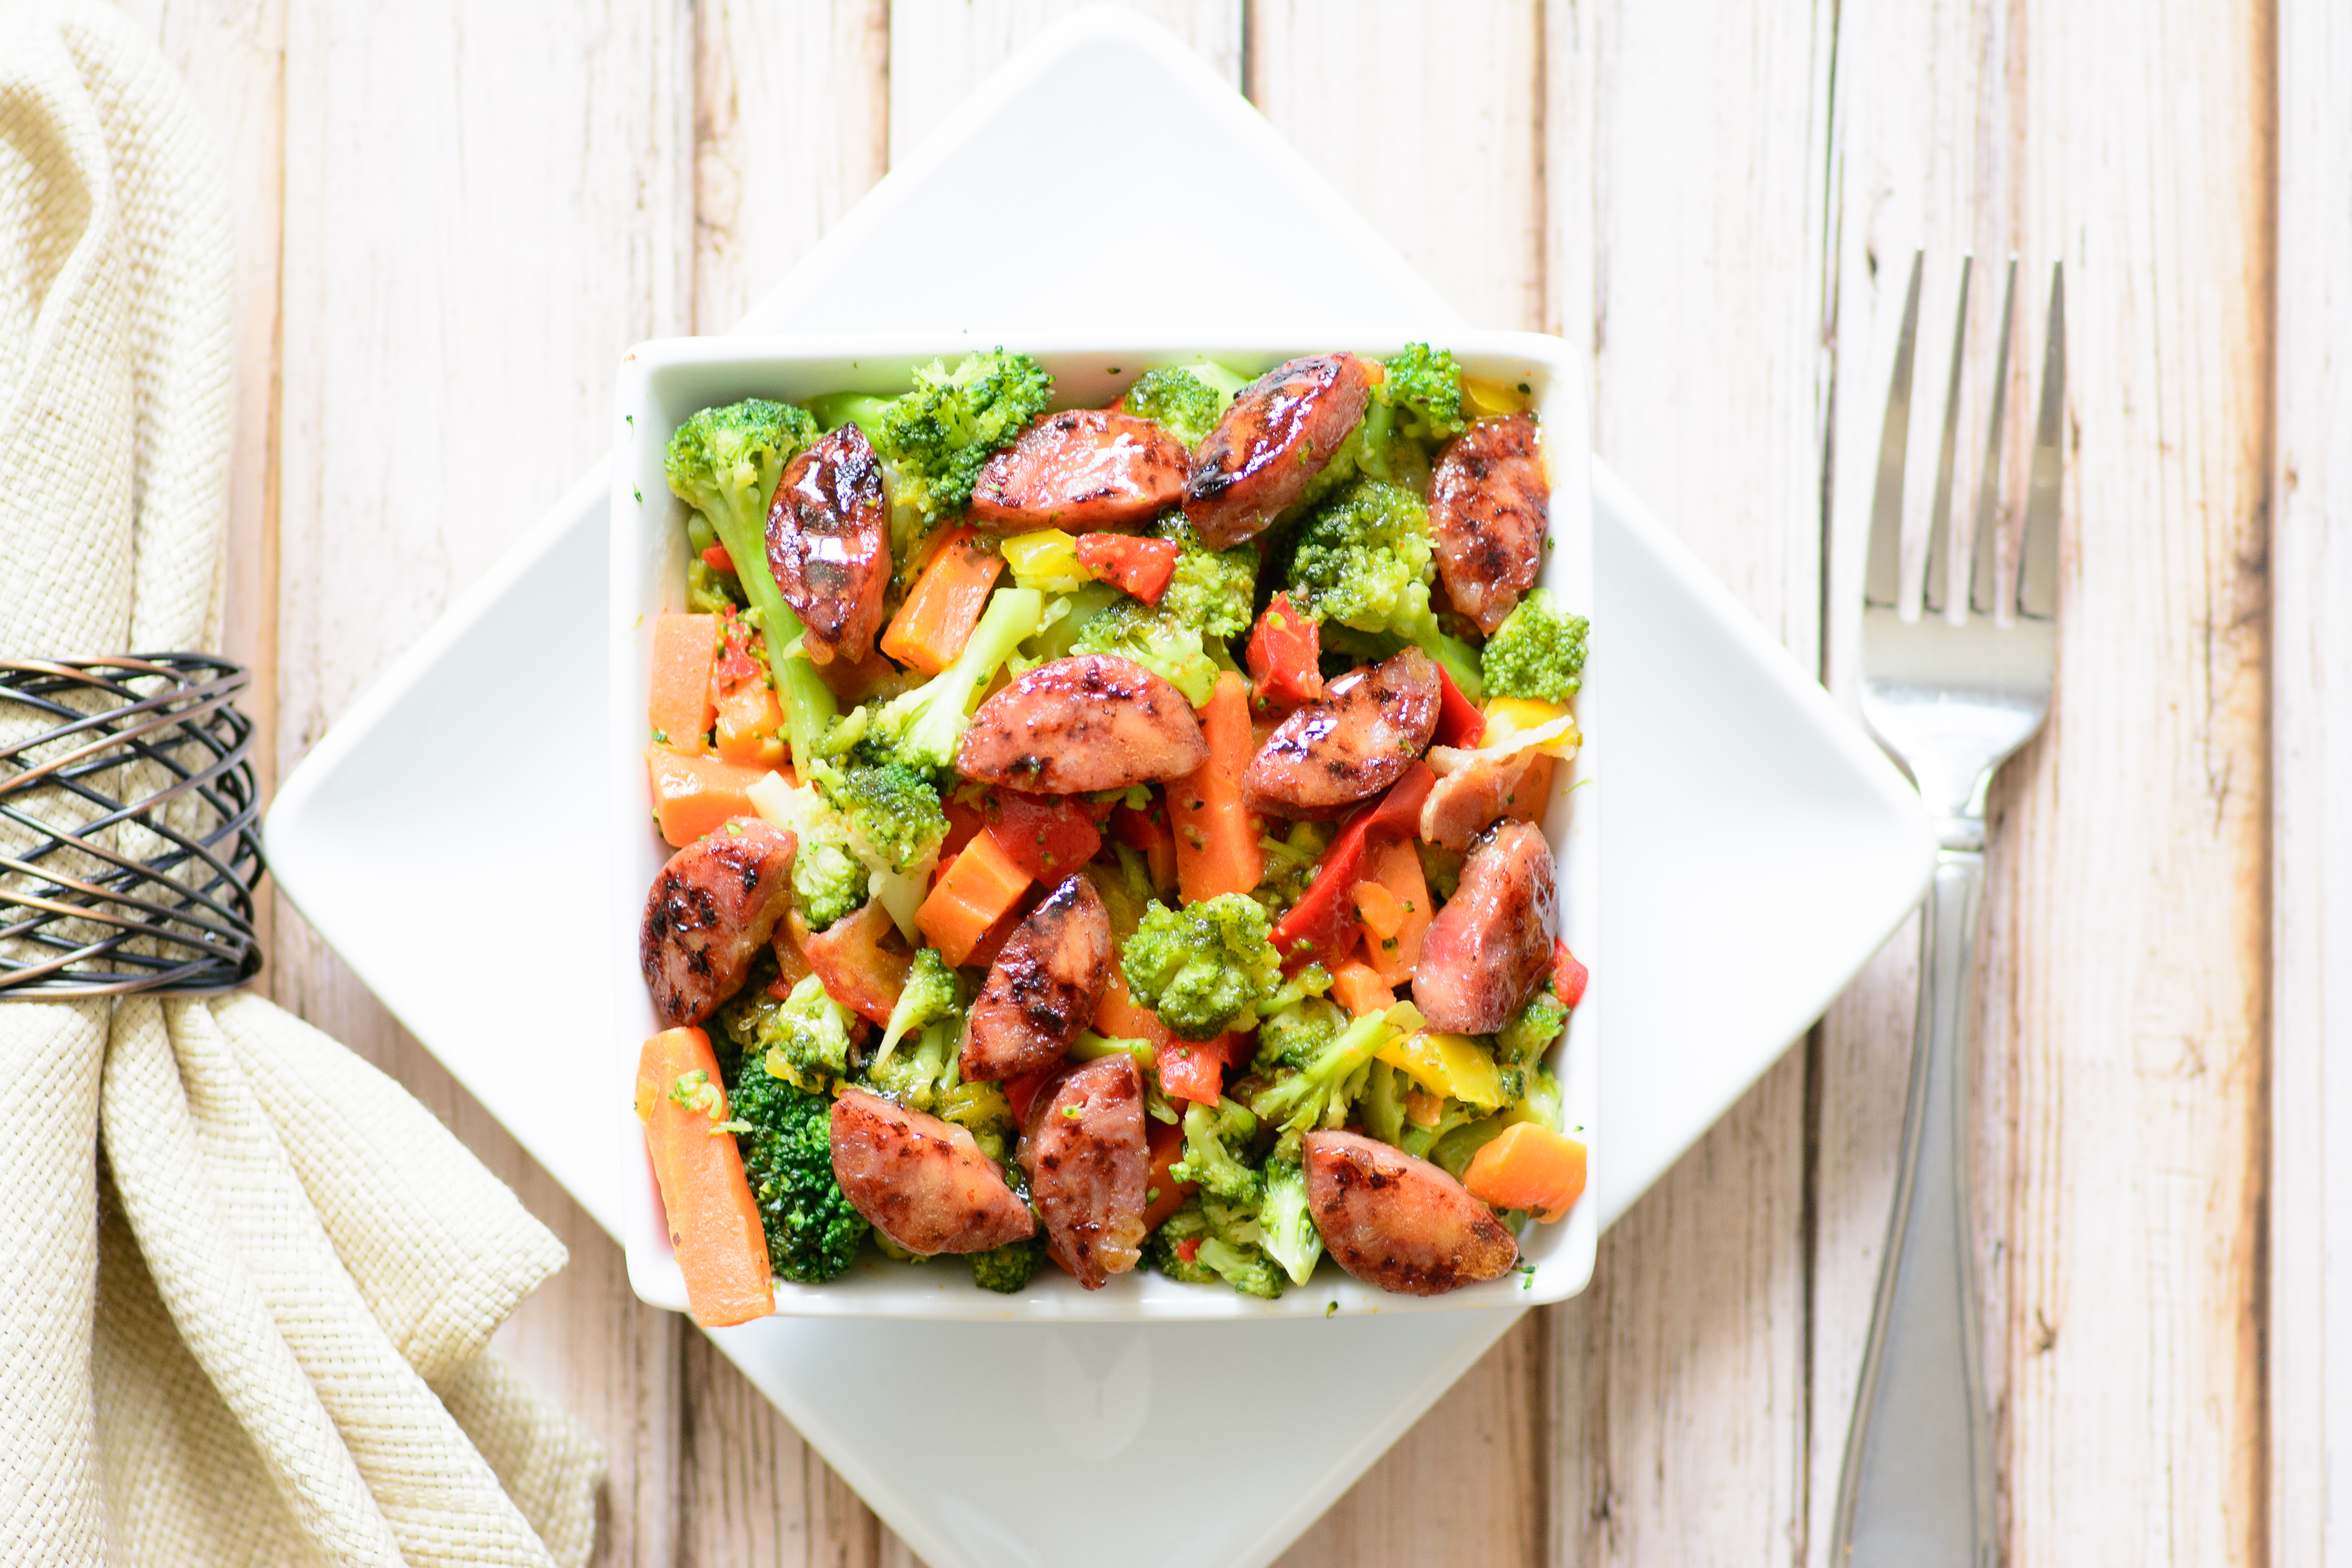 Sausage & Steamed Veggies with Pineapple Sriracha Sauce. This whole food recipe gluten free and paleo, making it a delicious alternative to processed foods. You won't believe how good this tastes.